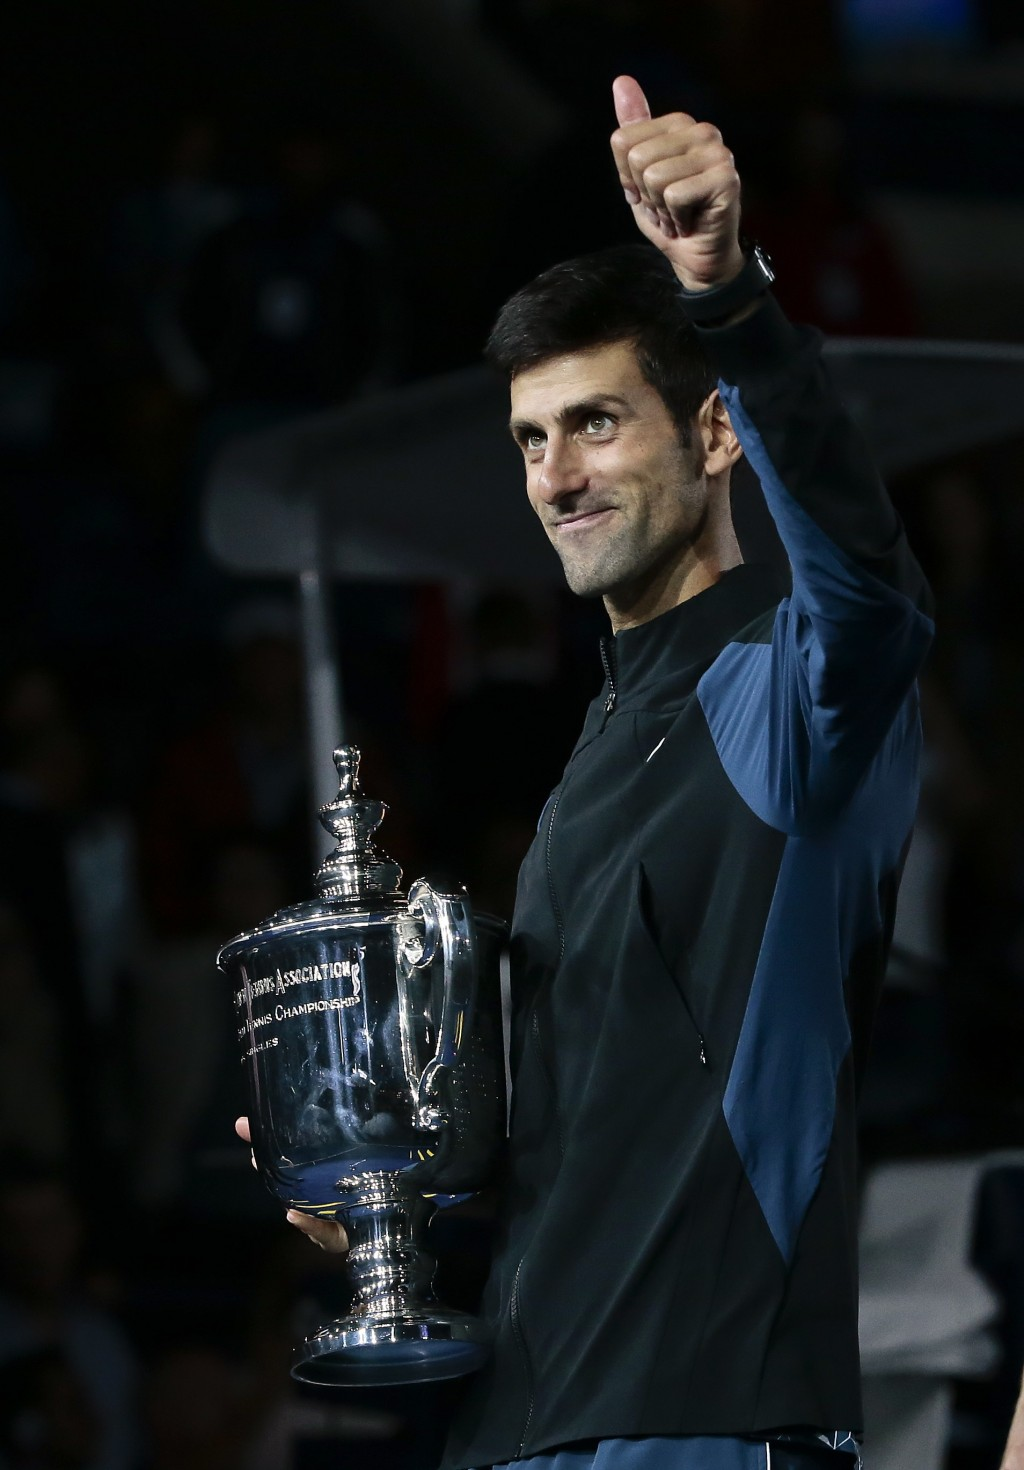 Novak Djokovic, of Serbia, holds the trophy after defeating Juan Martin del Potro, of Argentina, in the men's final of the U.S. Open tennis tournament